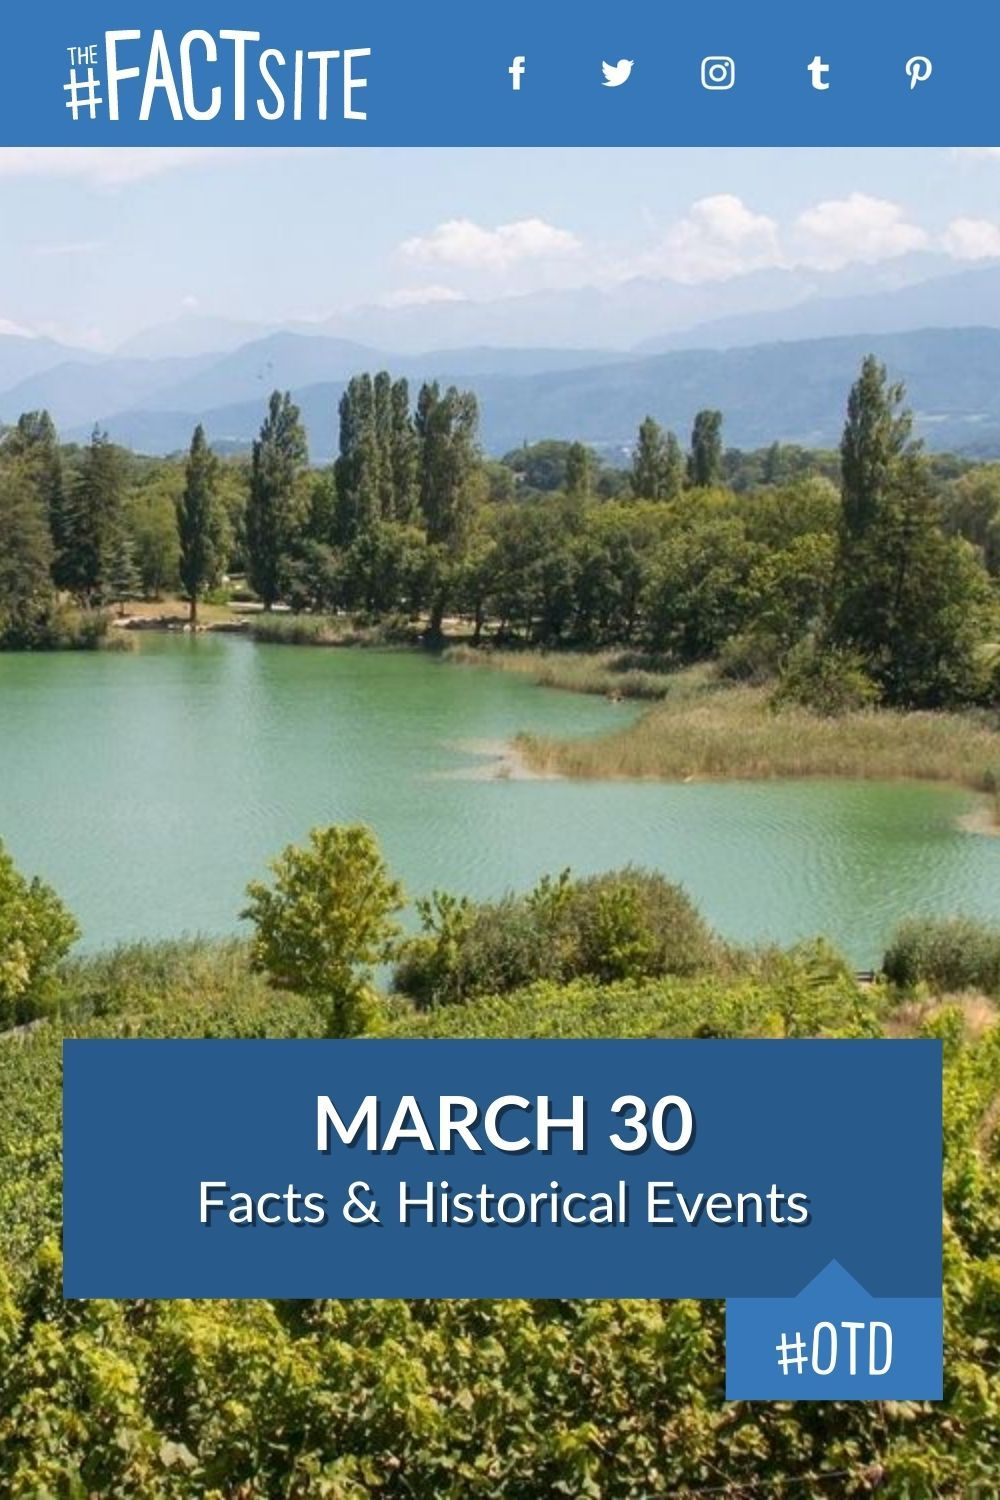 Facts & Historic Events That Happened on March 30